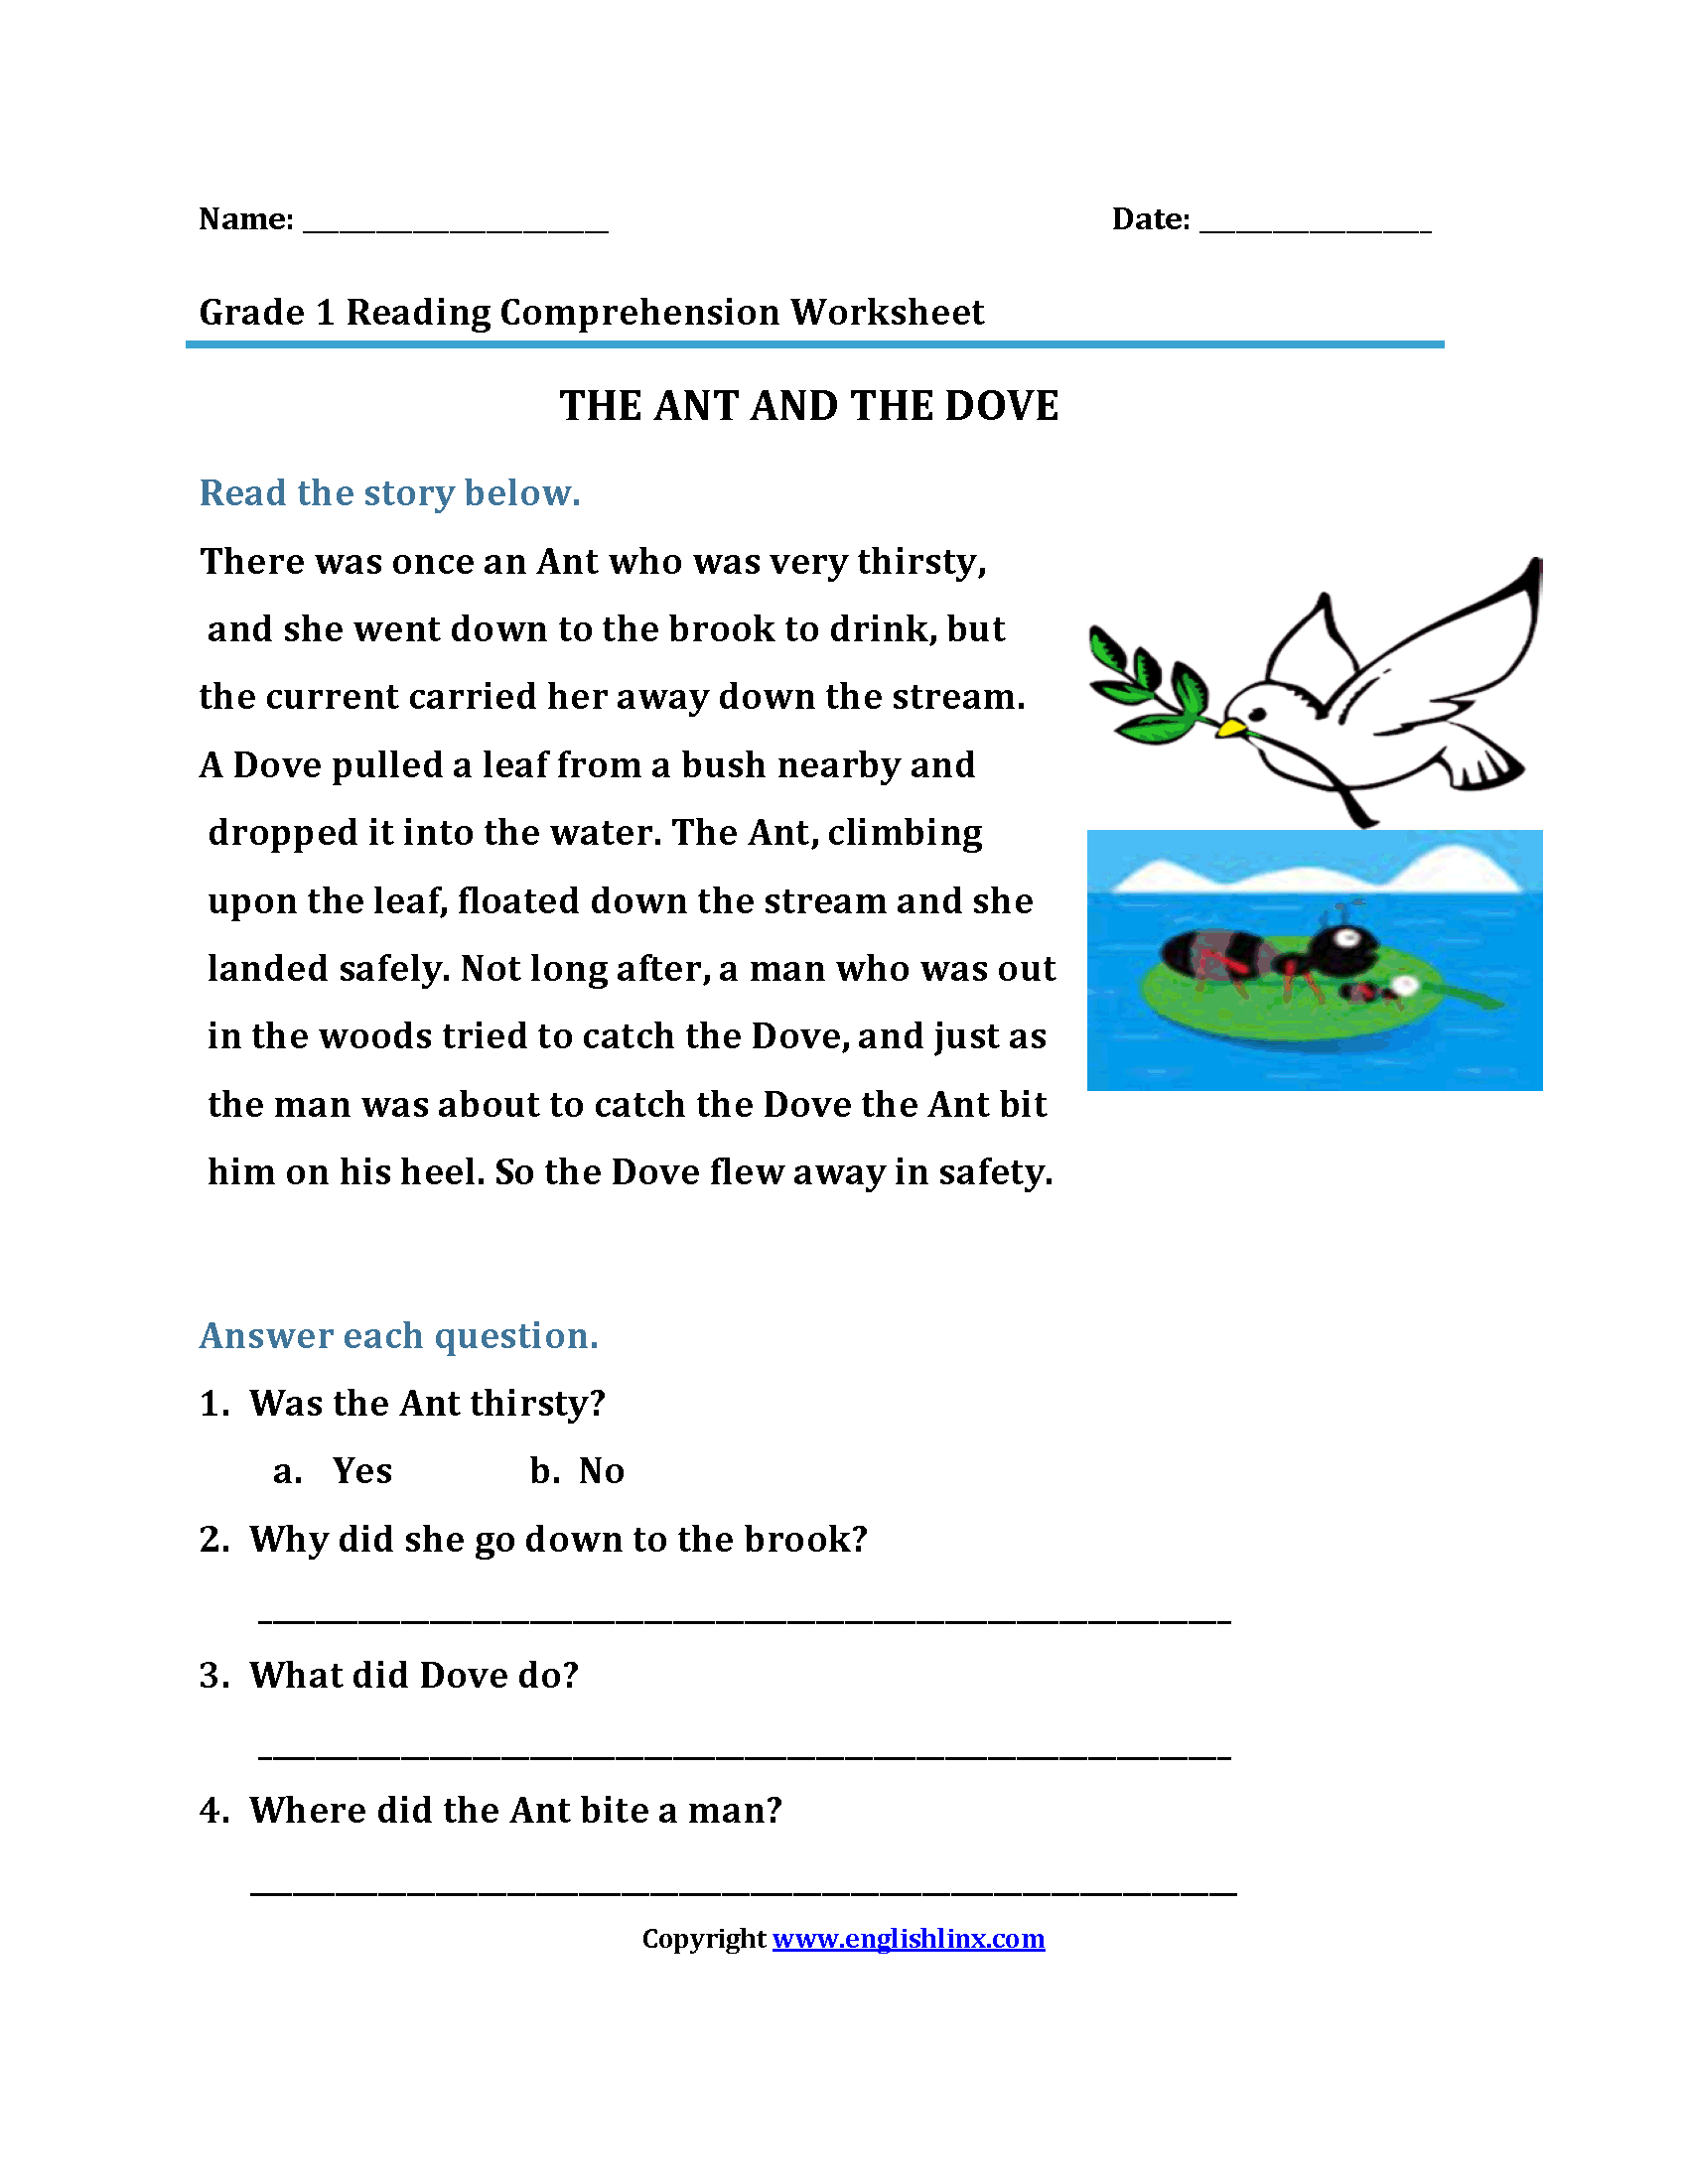 The Ant and Dove<br>First Grade Reading Worksheets